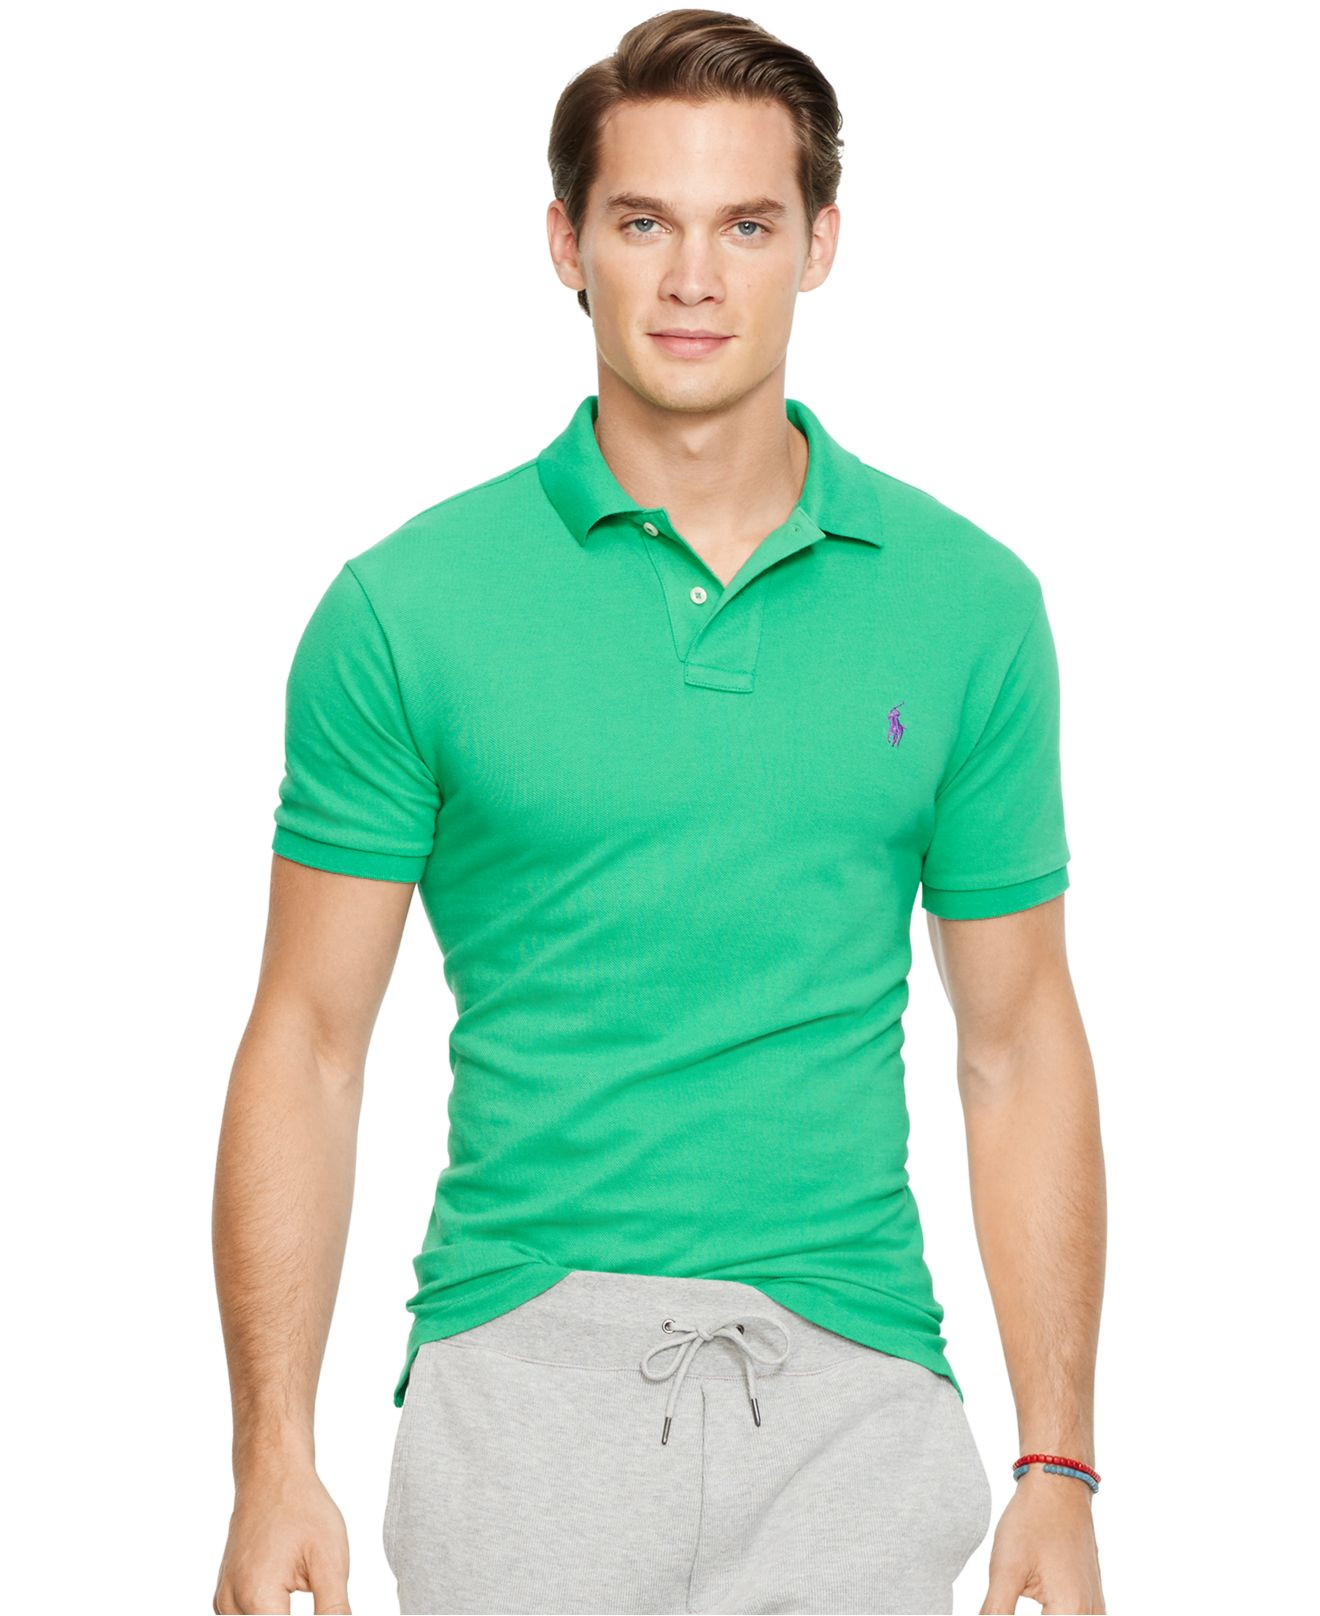 Polo ralph lauren men 39 s custom fit mesh polo shirt in for Ralph lauren custom fit mesh polo shirt